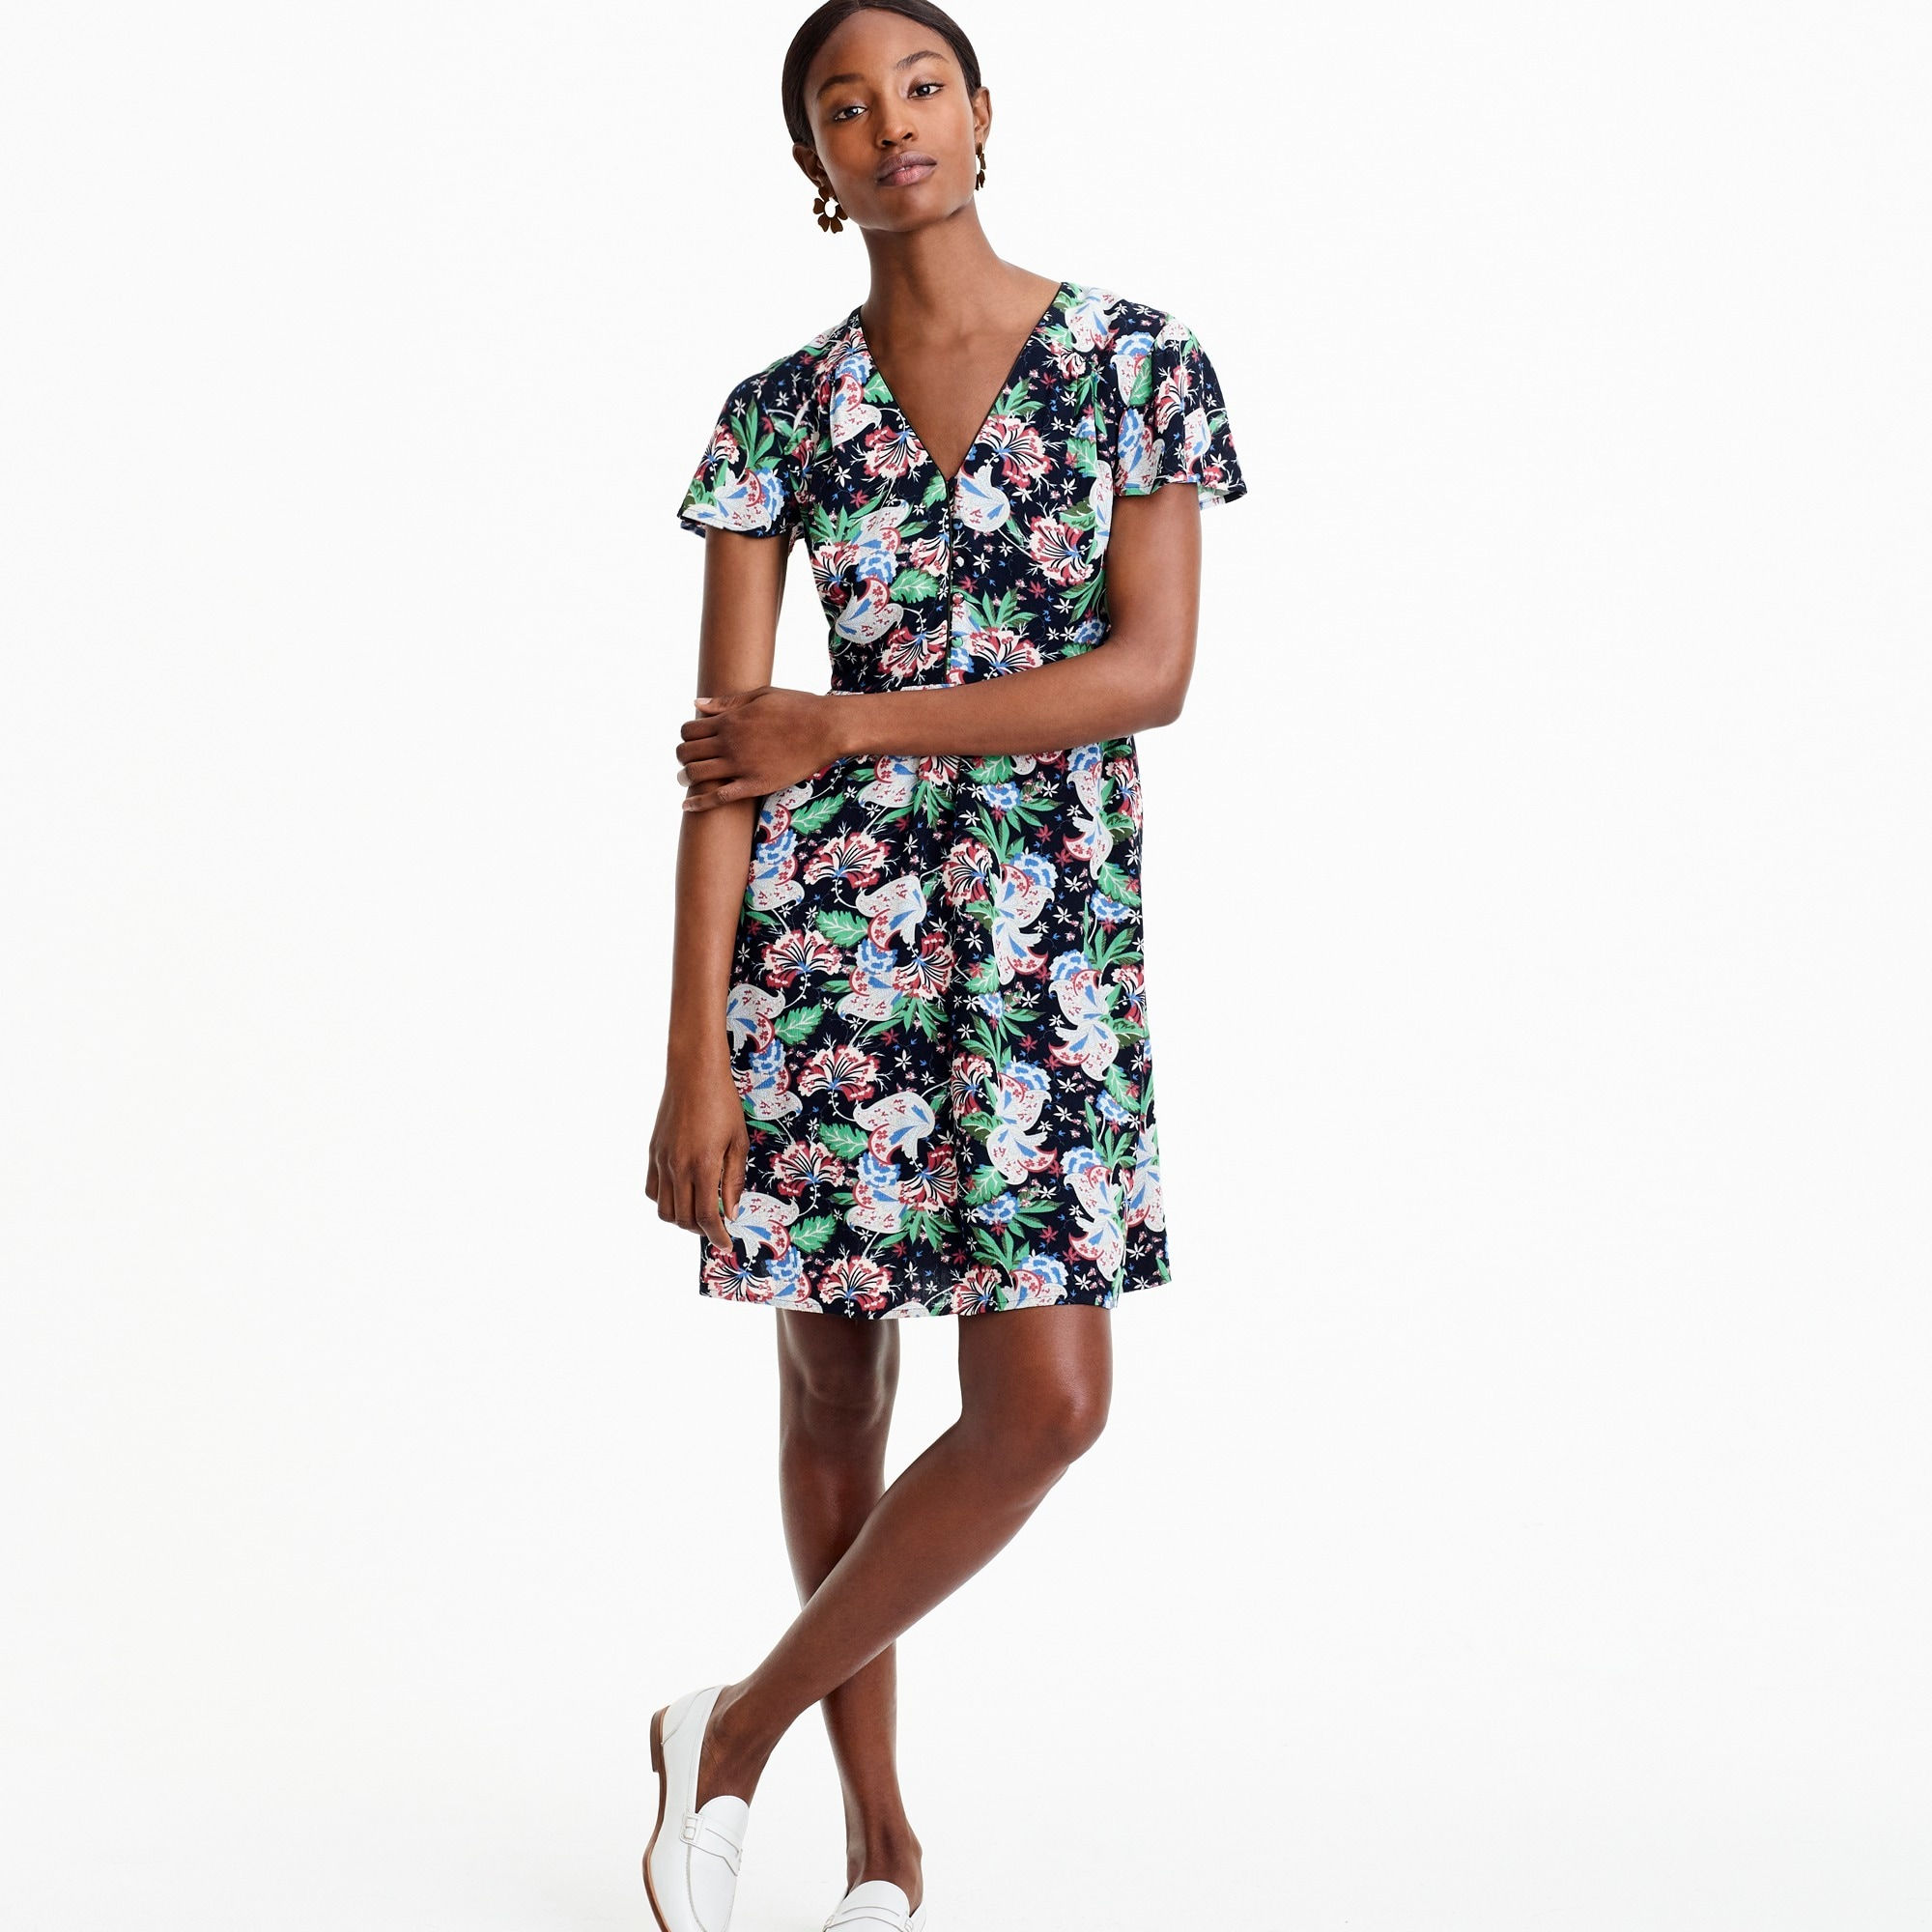 womens Short-sleeve button-front dress in island floral